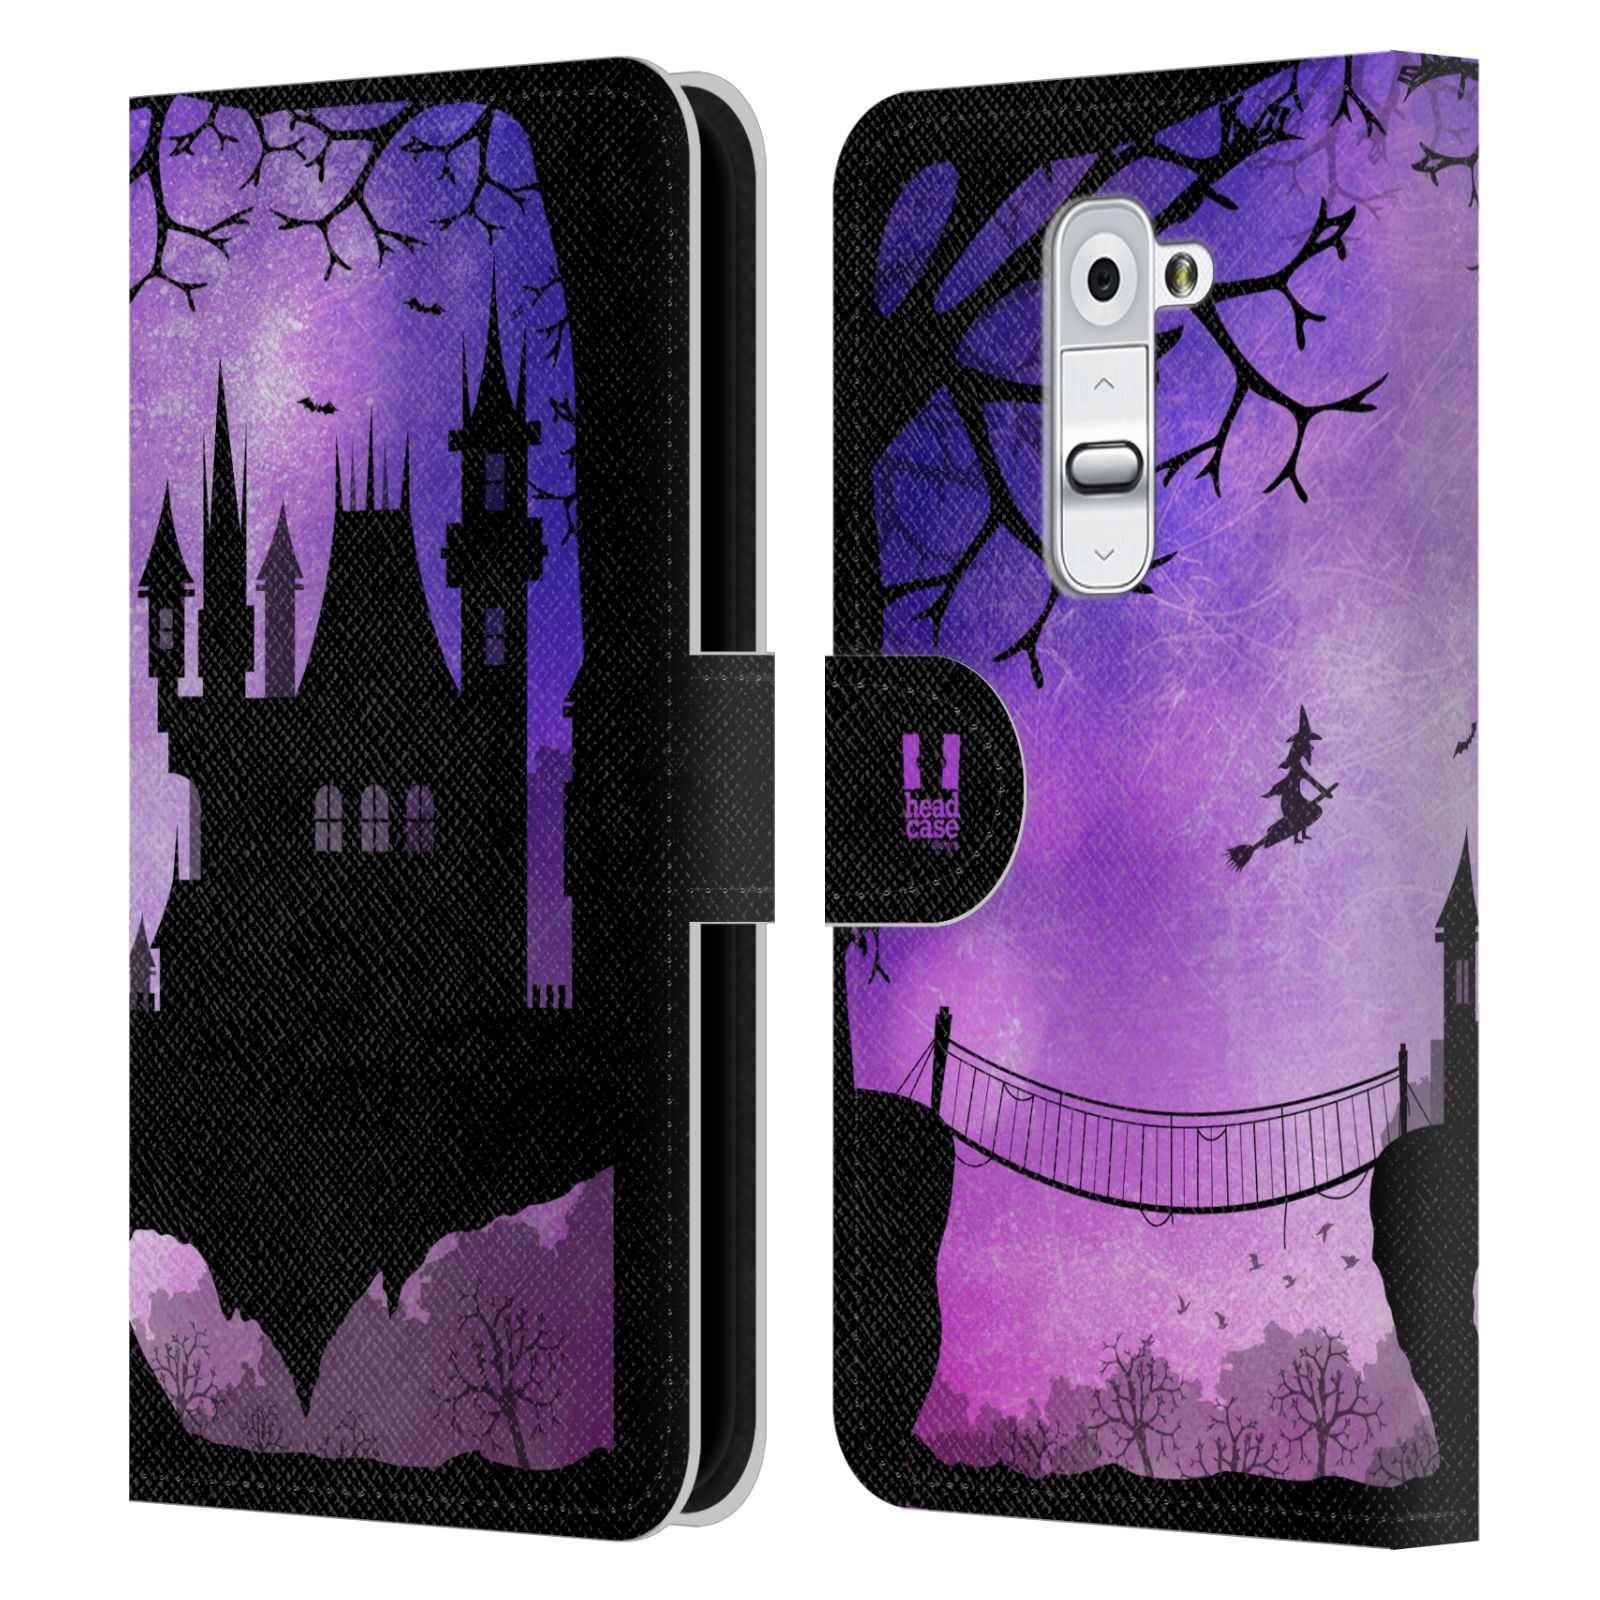 HEAD CASE DESIGNS DREAMSCAPES SILHOUETTES LEATHER BOOK WALLET CASE FOR LG G2